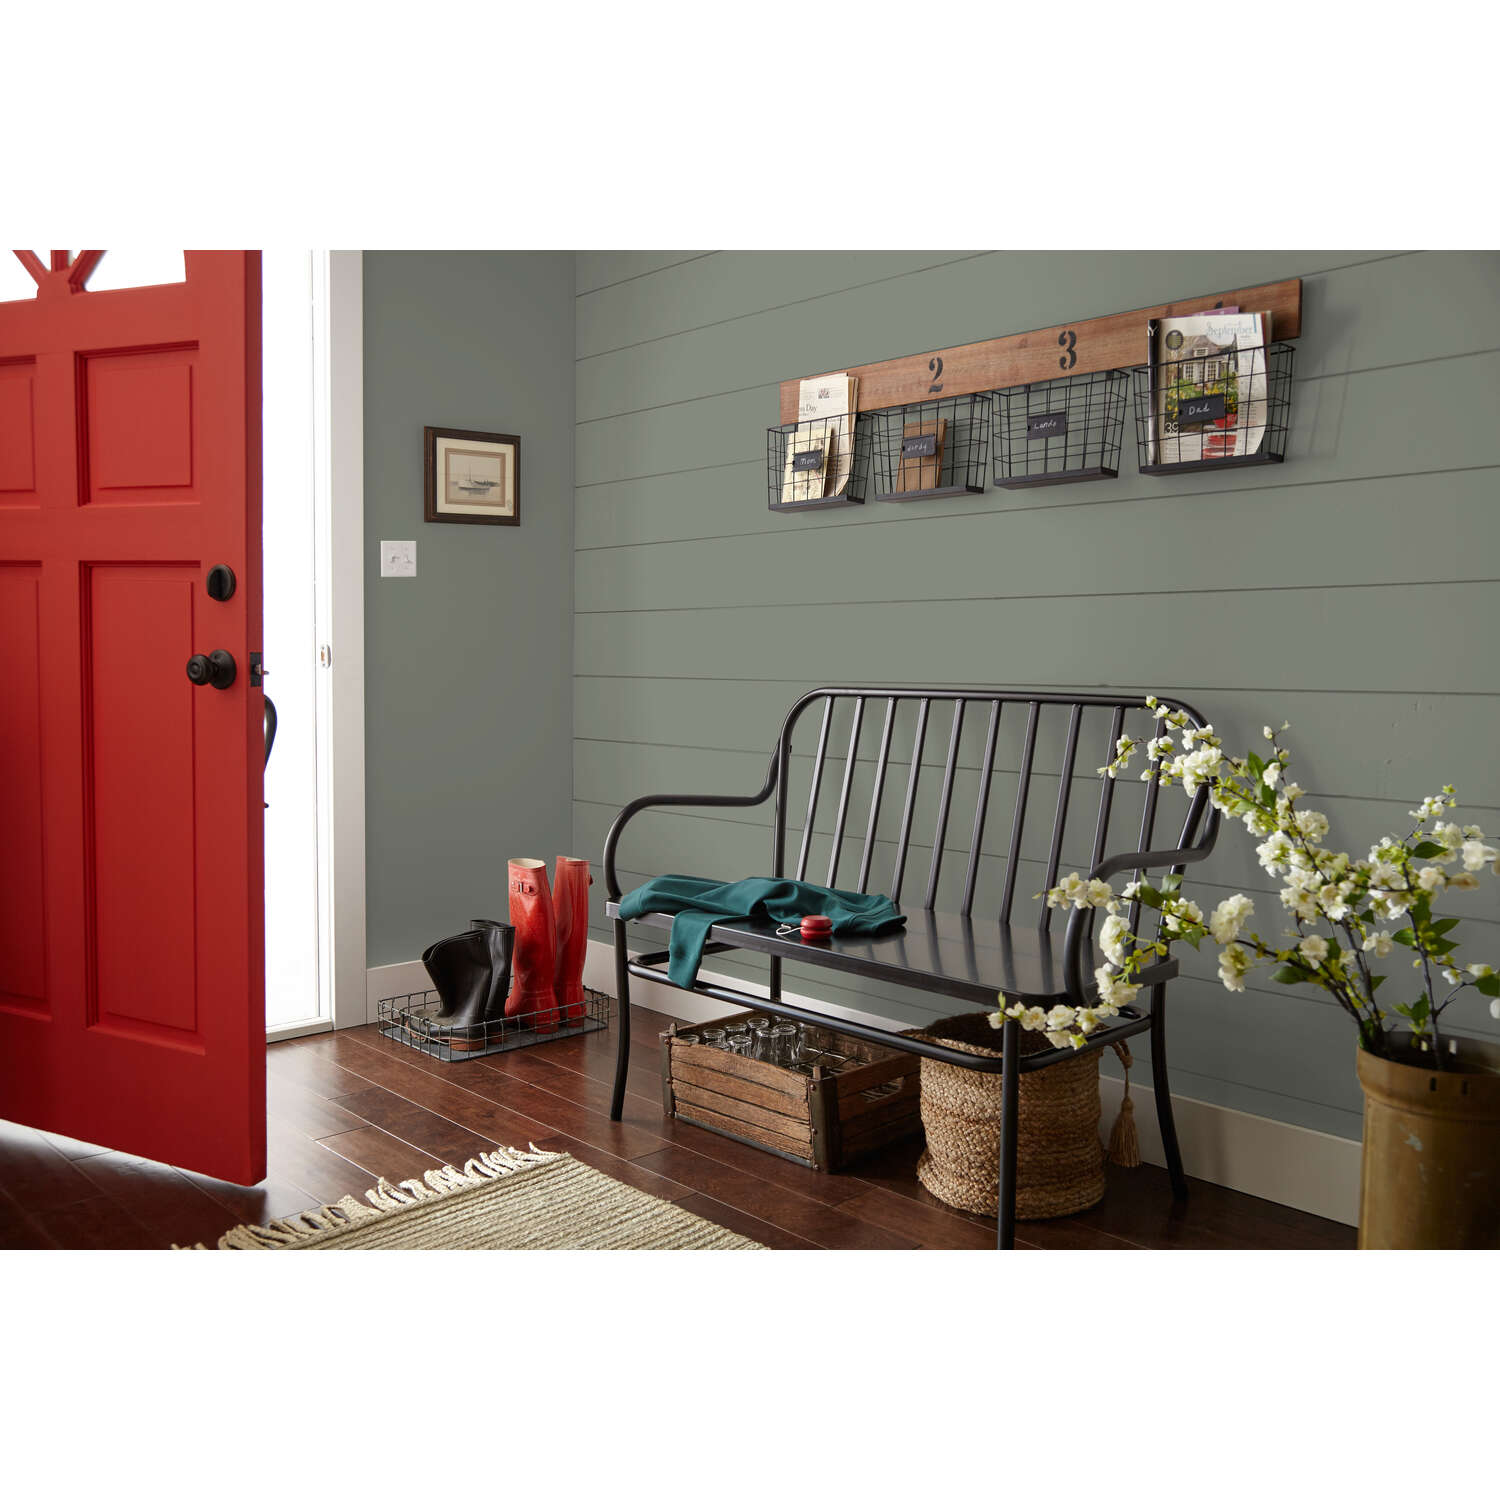 Magnolia Home  by Joanna Gaines  Eggshell  Eden  Acrylic  Paint  8 oz.